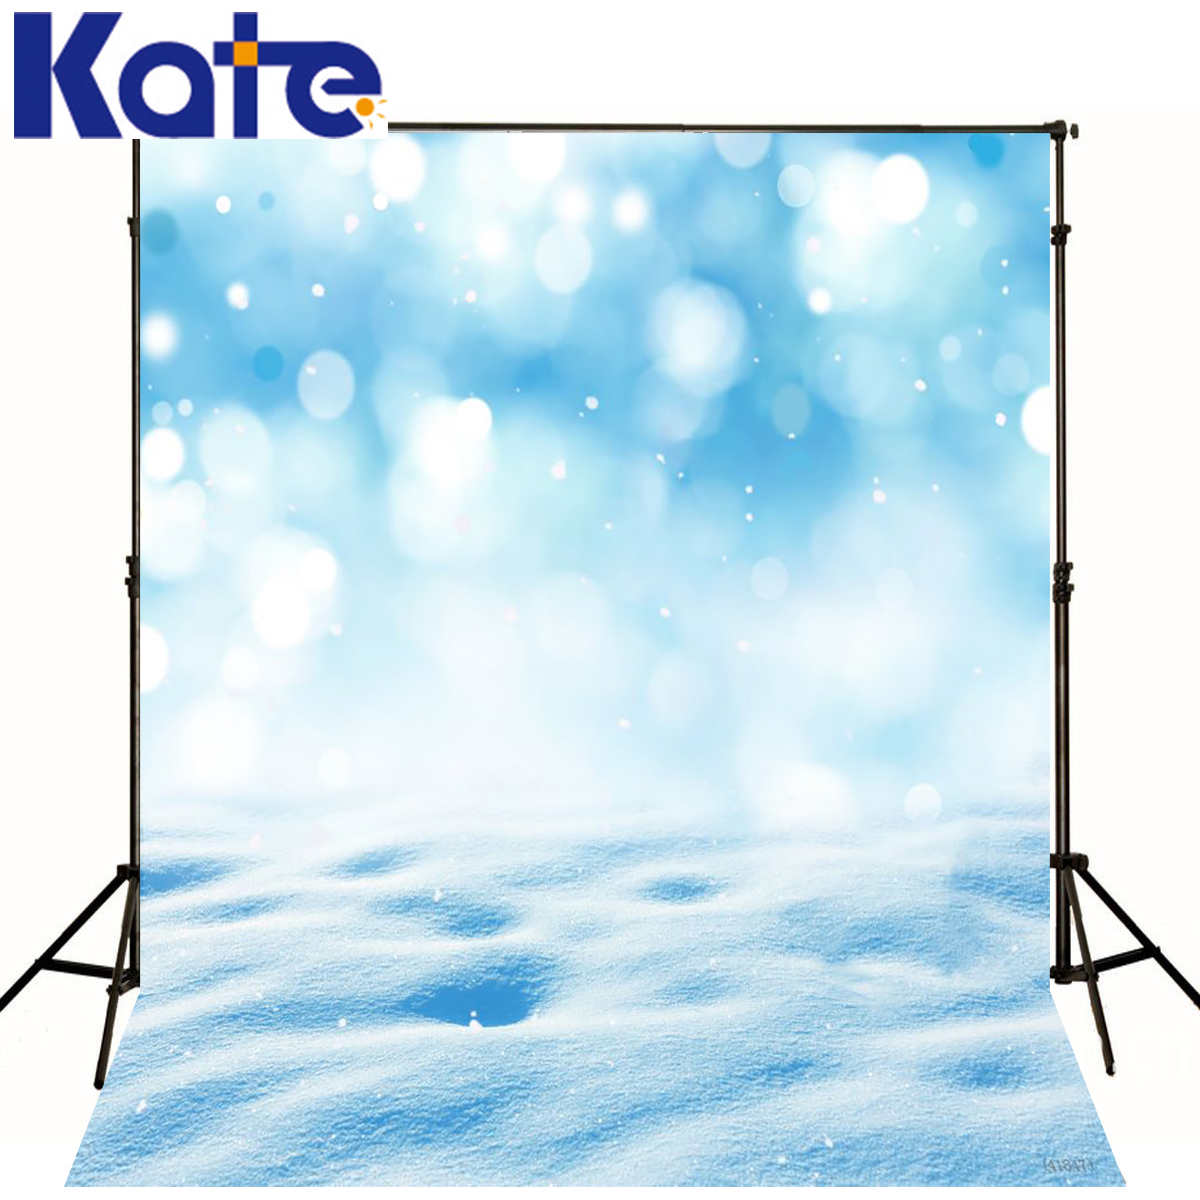 Kate Backdrop Photo Dream Spot Blue Style Scenery Backdrops Photography Snow Is Land Background For Photo Shoot kate dry land photography backdrops land photography background retro children custom backdrop props for newborn photo shoot